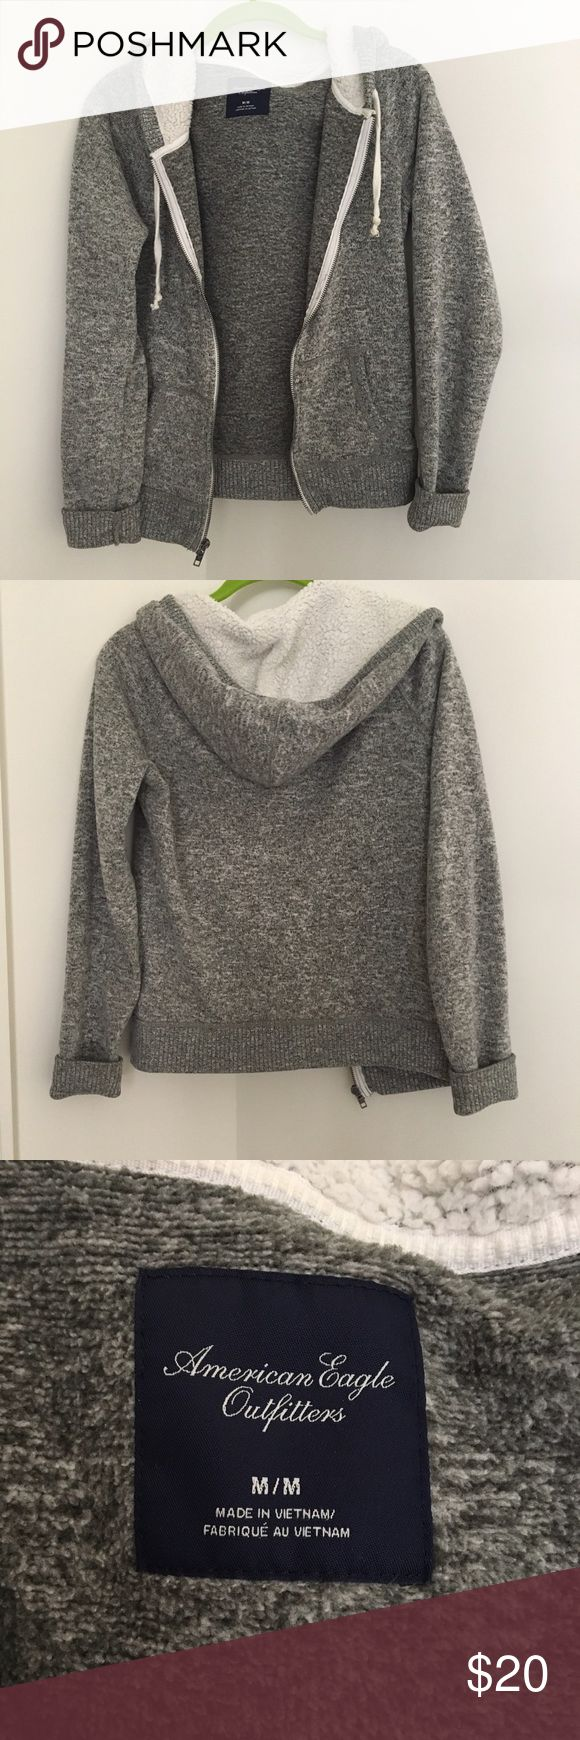 Gray American Eagle Zip-Up Hoodie ✧・゚: *✧・゚:*READ ME*:・゚✧*:・゚✧ 🌀 Super warm, cozy, and soft! No flaws, gently used, basically like new. Size medium but a little small for me (I like hoodies baggy) so I'd definitely say this runs true to size or small depending on your preferences.   ✧・゚: *✧・゚:*REMINDERS*:・゚✧*:・゚✧ 🌀 Please use the offer button, not the comments! 🌀 Ship same day except after 3pm EST 🌀 Smoke free home  🌀 Pet friendly home - no shedding!  🌀 What you see is what you get  🌀…